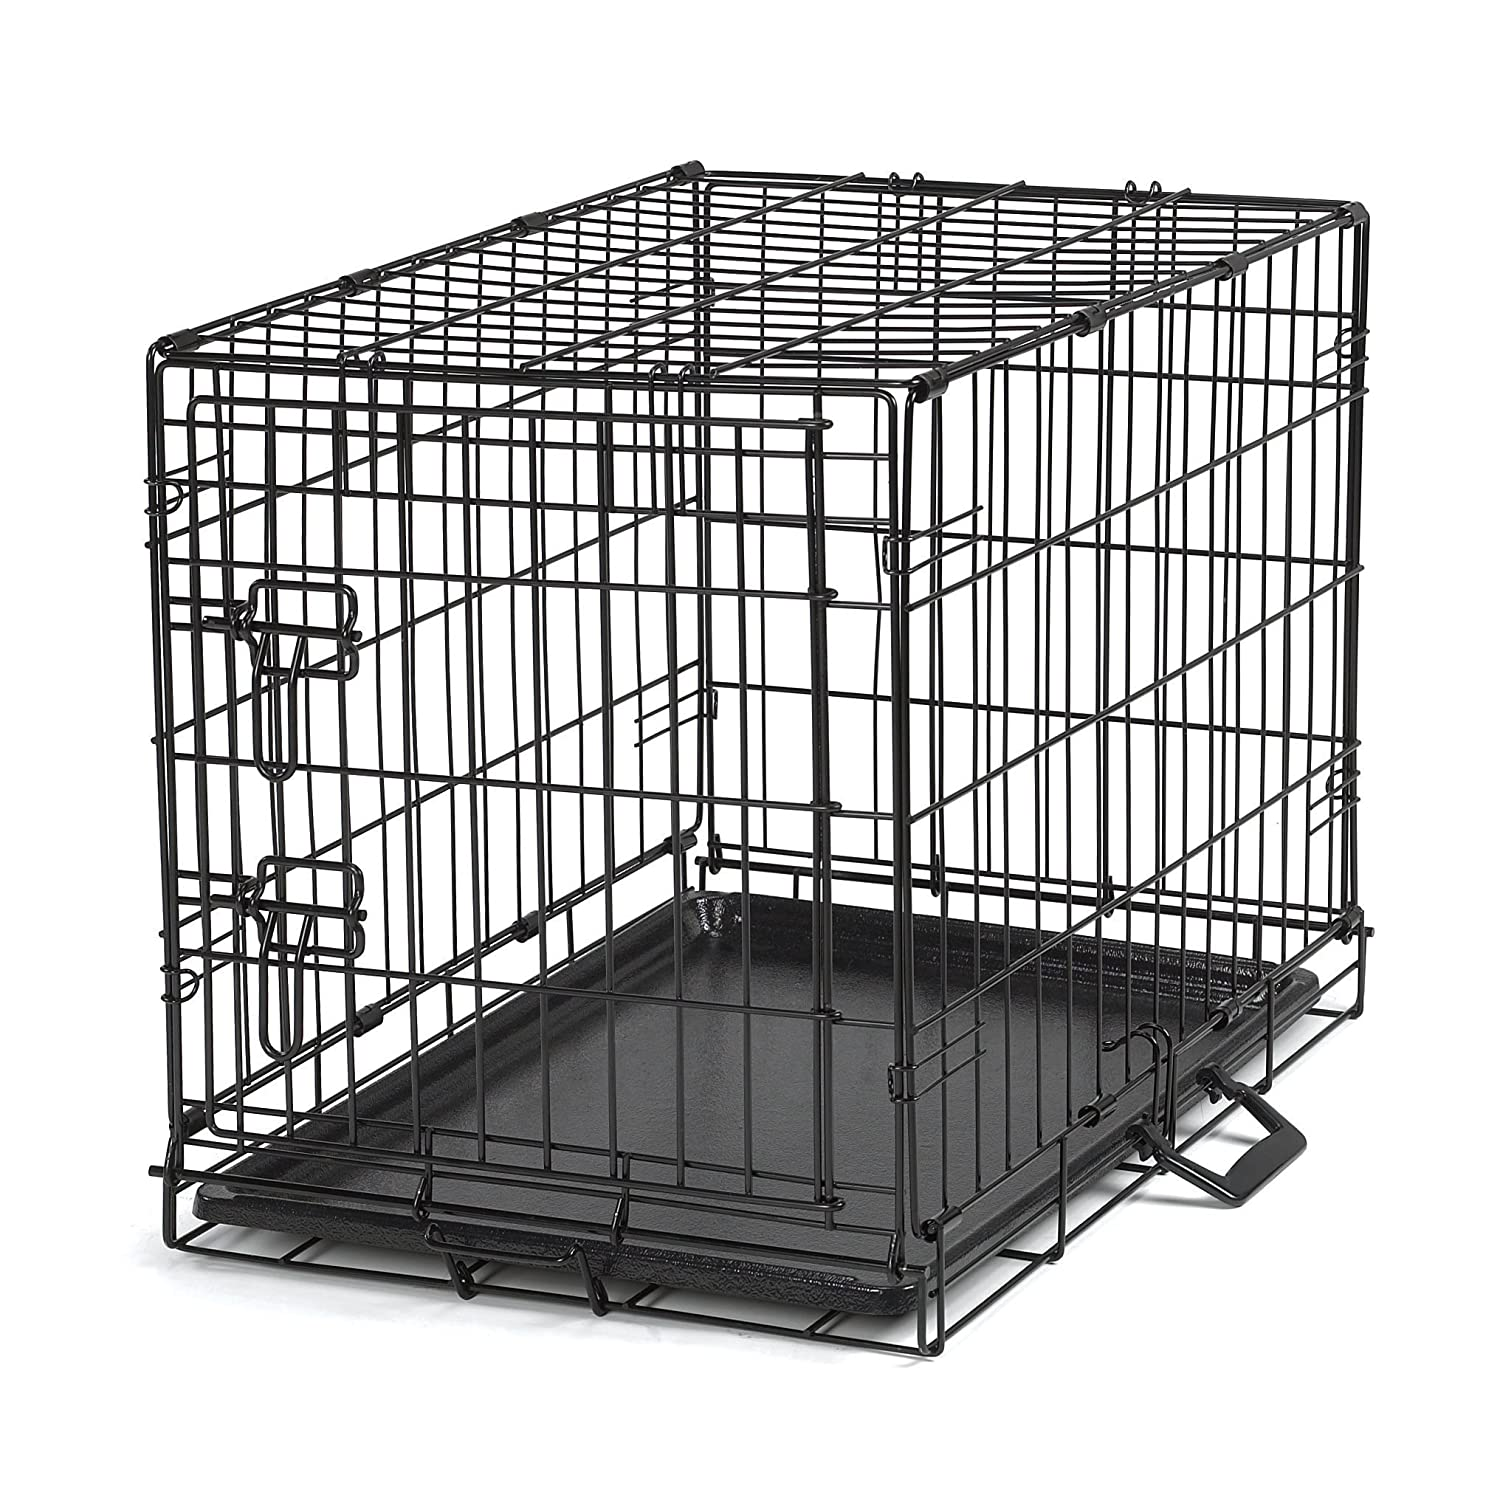 Amazon.com : Proselect Easy Dog Crates for Dogs and Pets - Black; Extra  Large : Pet Crates : Pet Supplies